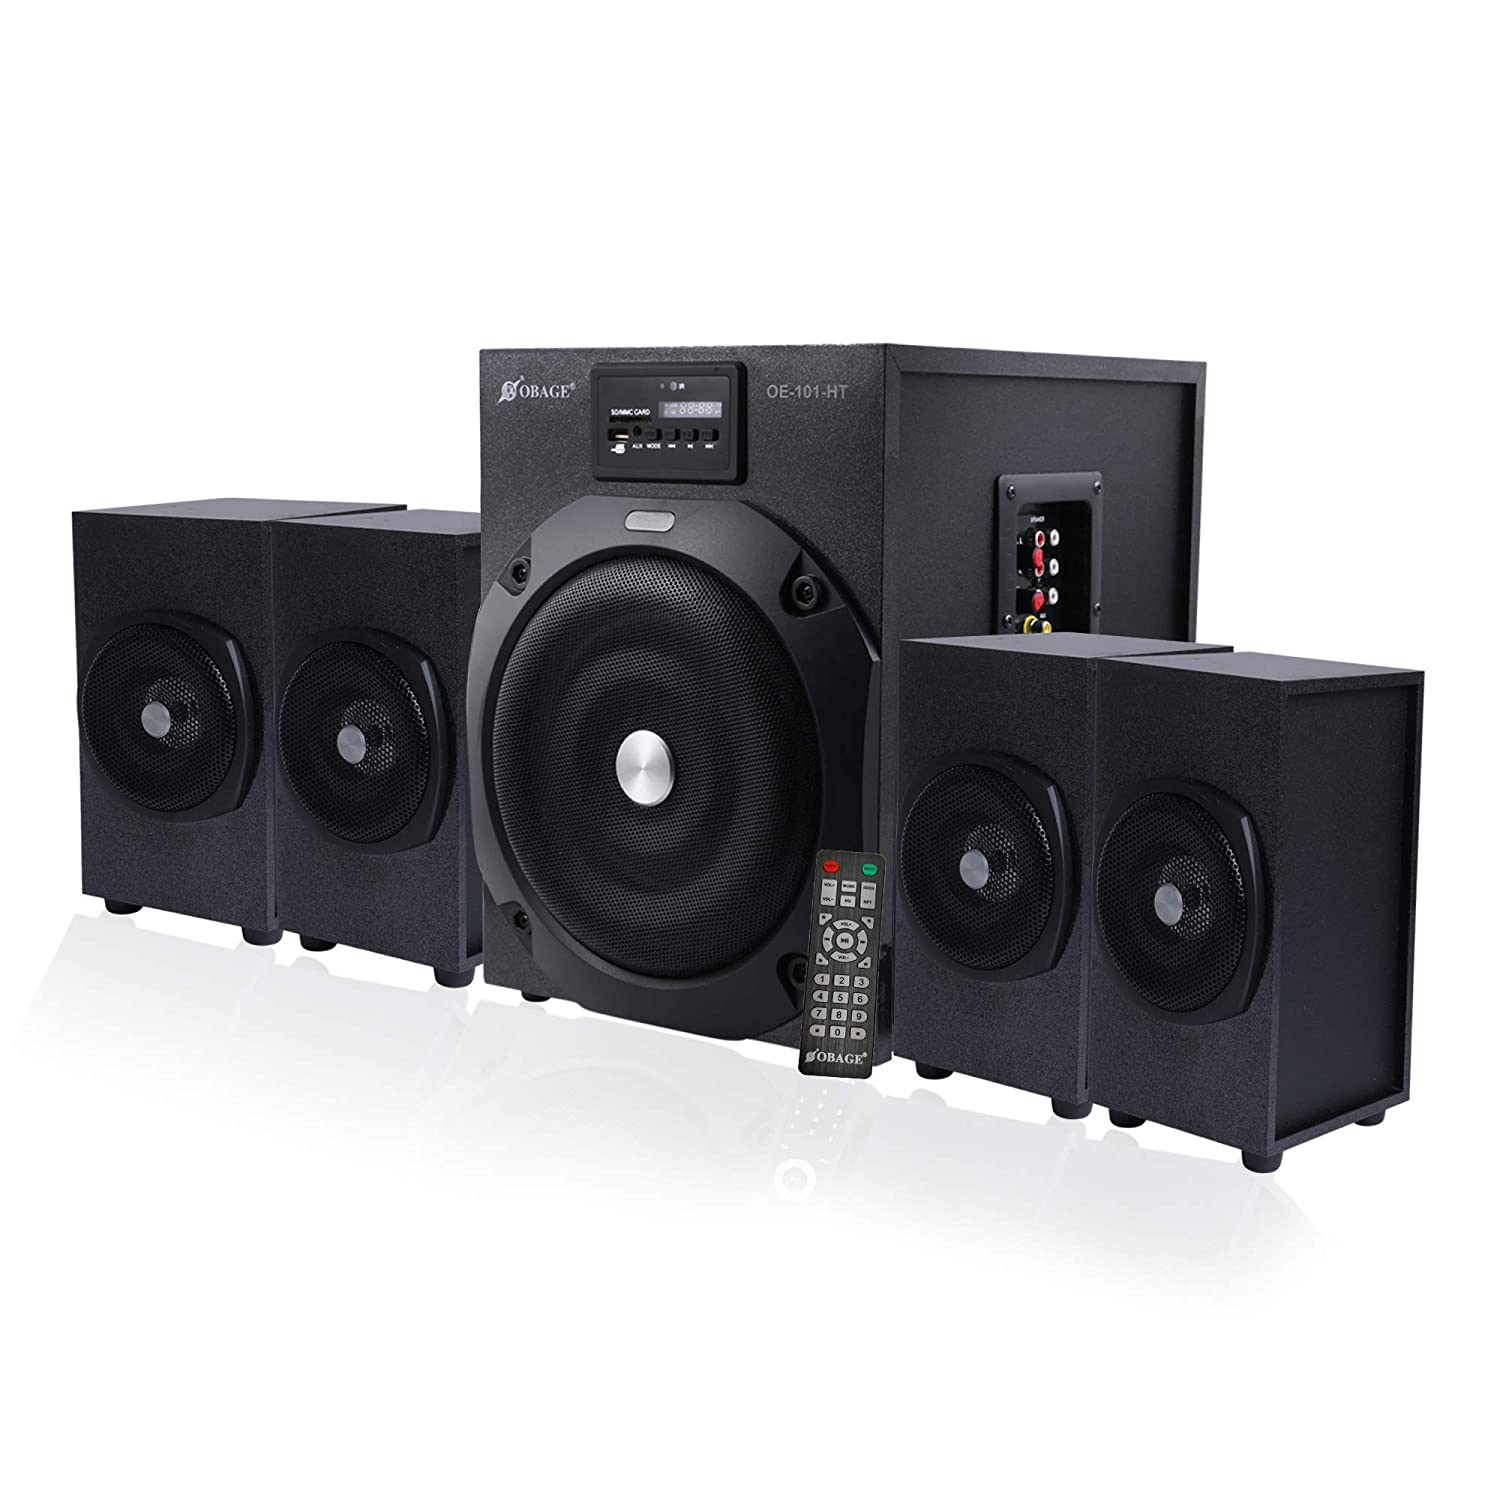 OBAGE Home Theaters 4.1 HT-101 Bluetooth System with Dual AUX,USB,MMC, FM Playback